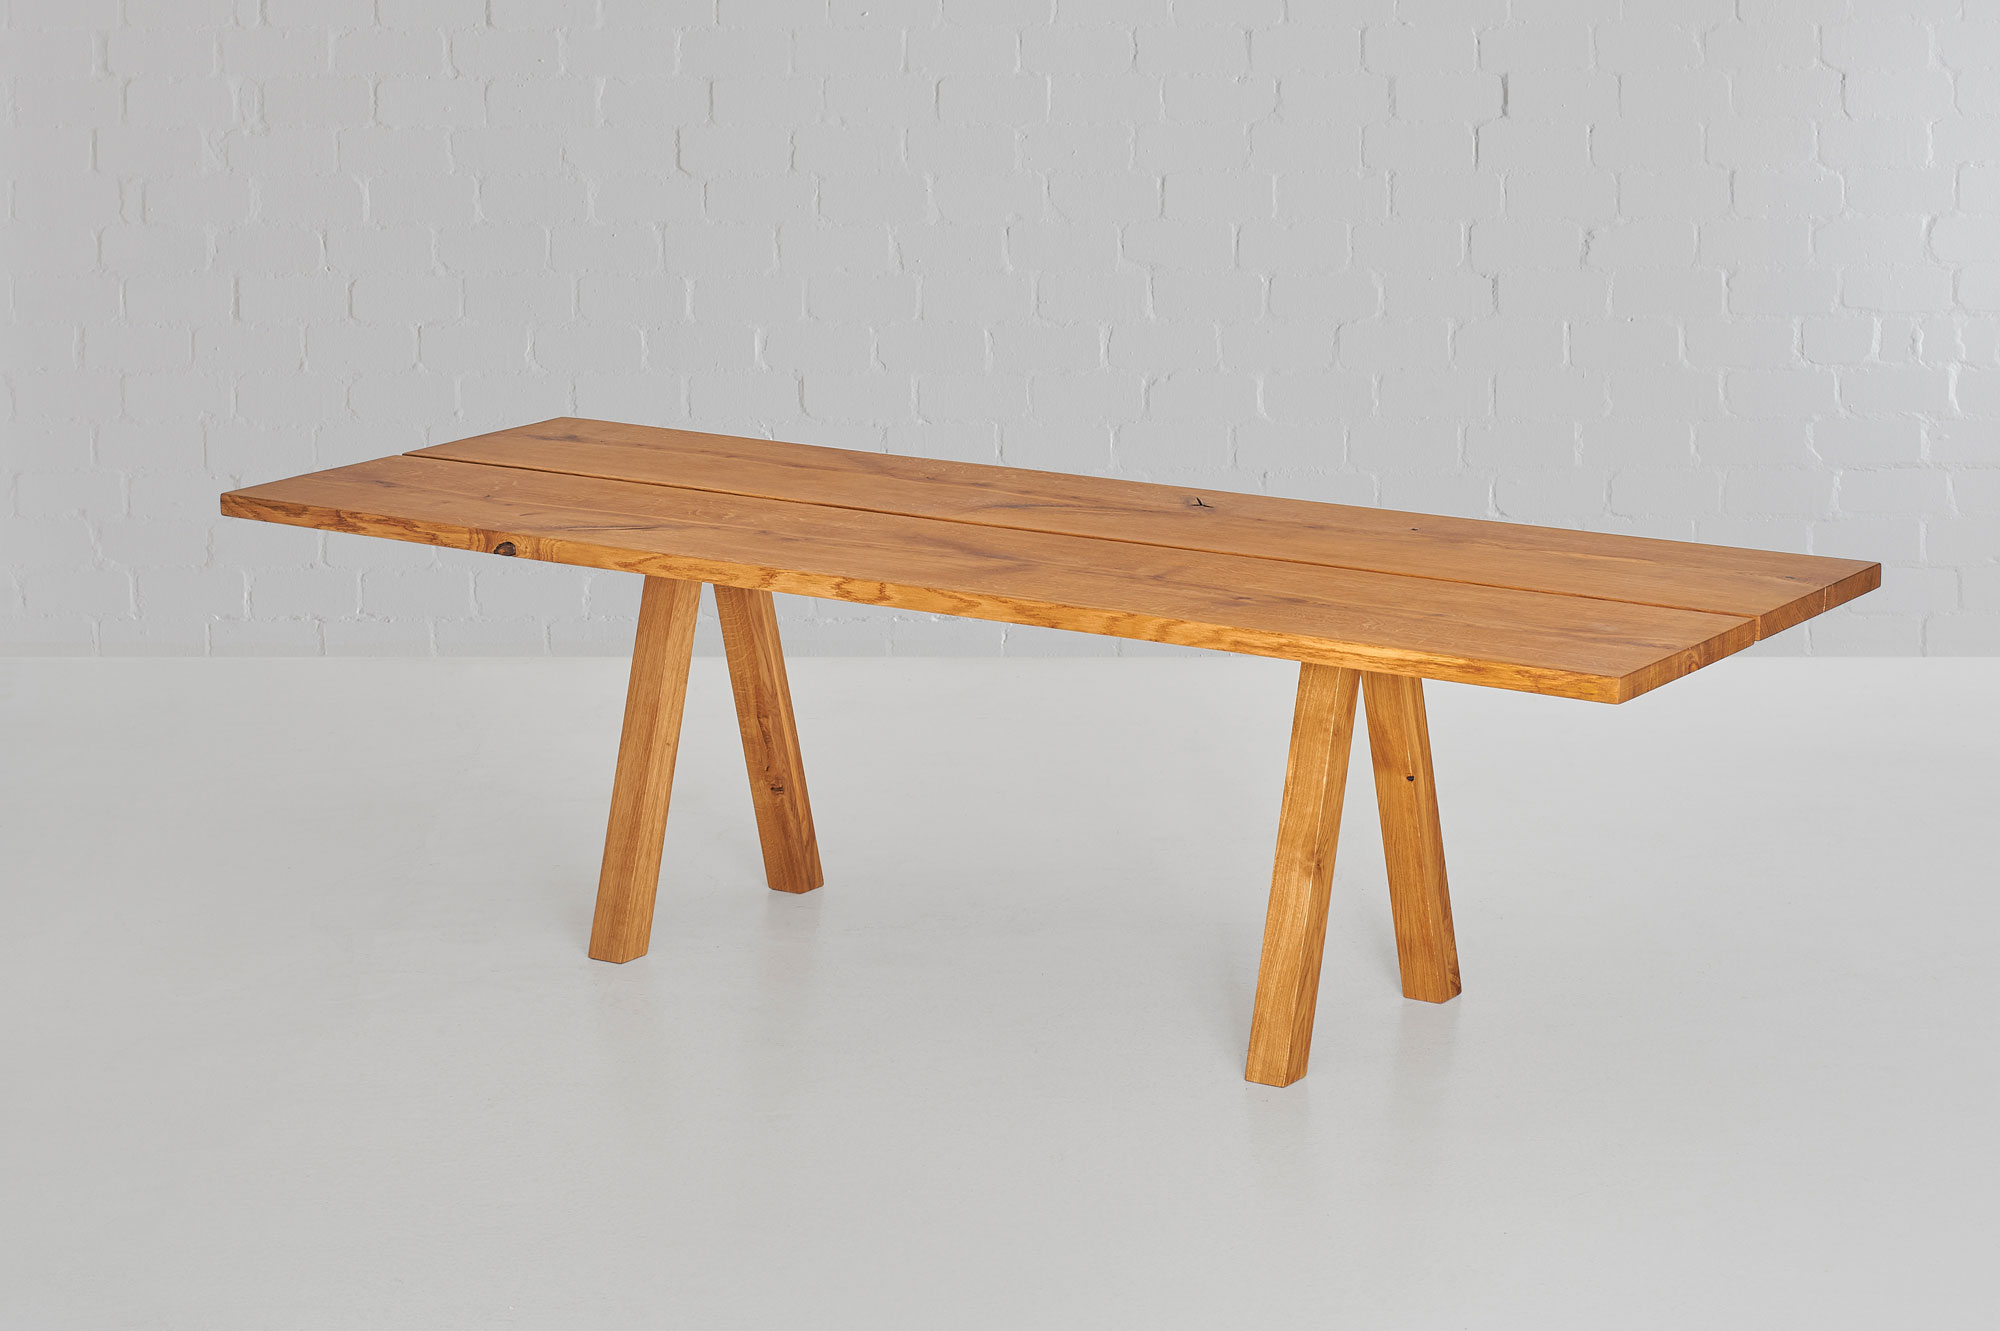 Designer Tree Trunk Table PAPILIO custom made in solid wood by MODUM